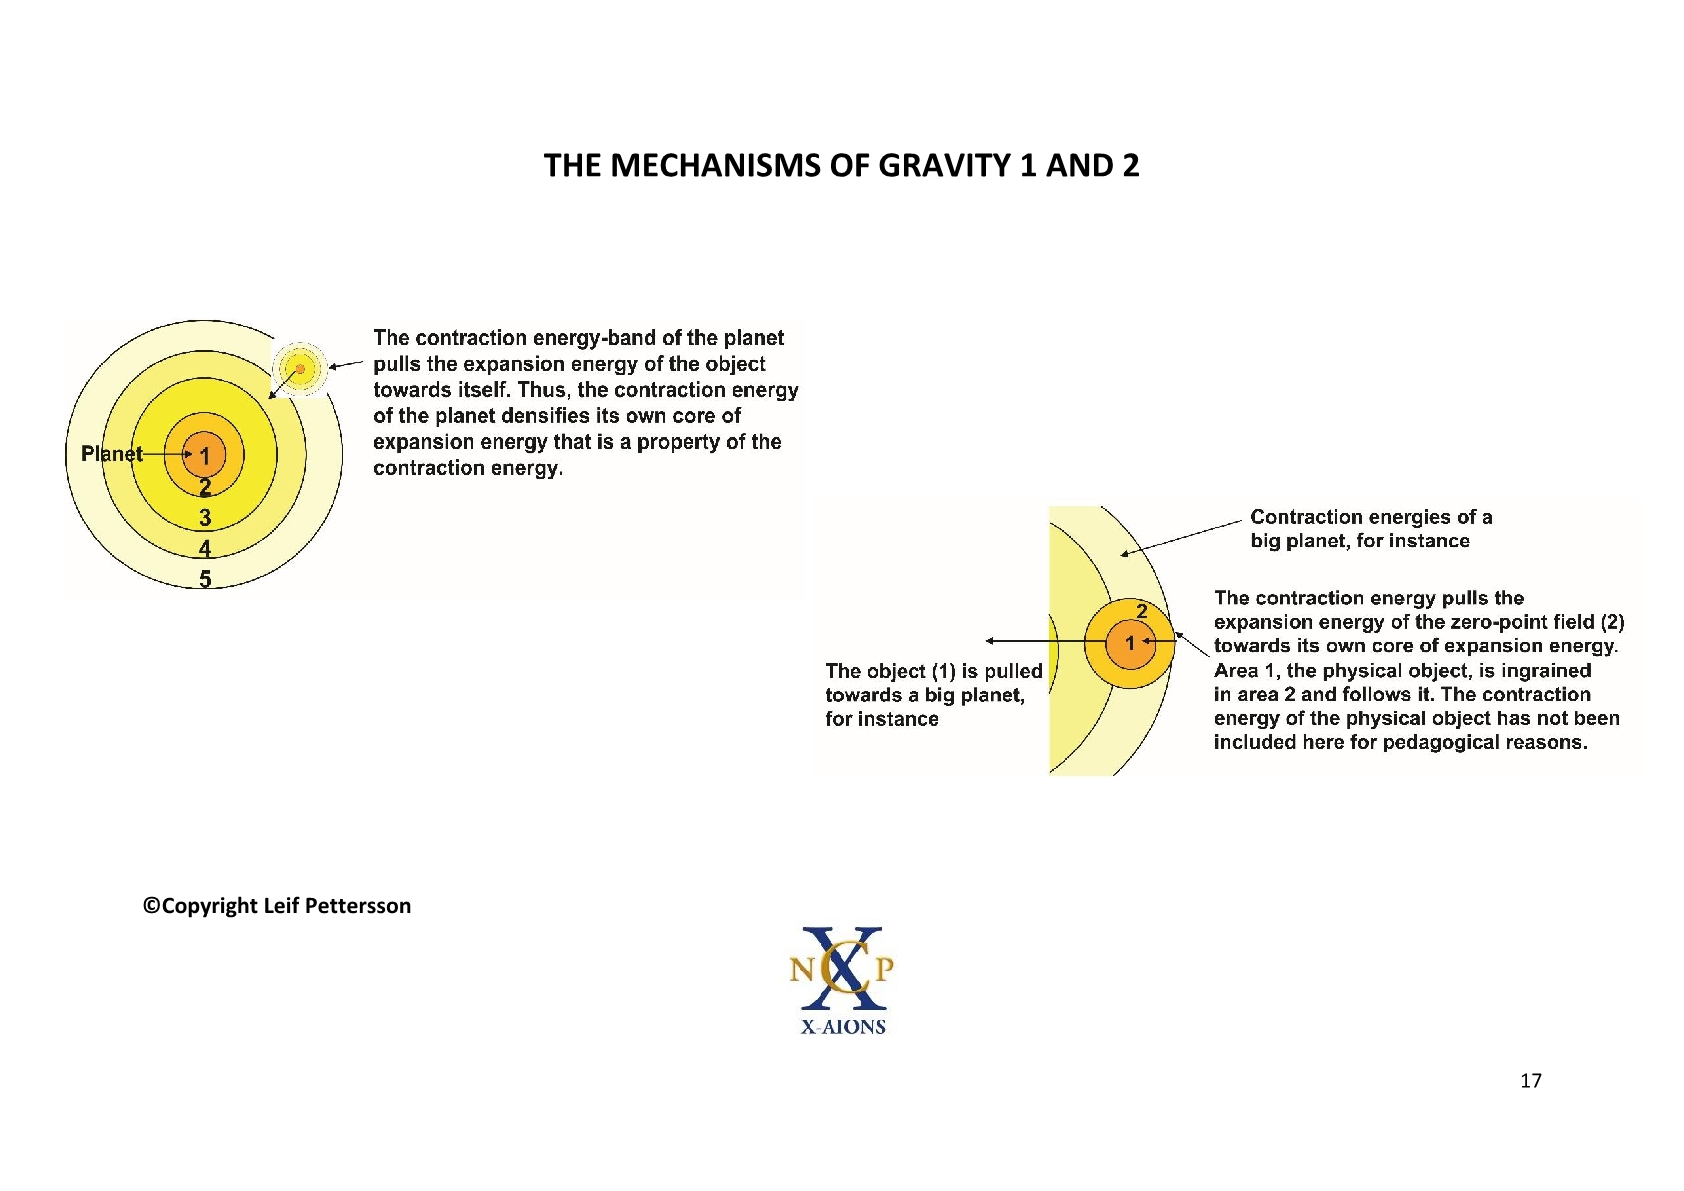 TSC 2012 The Mechanisms of Gravity, NCP X-AIONS